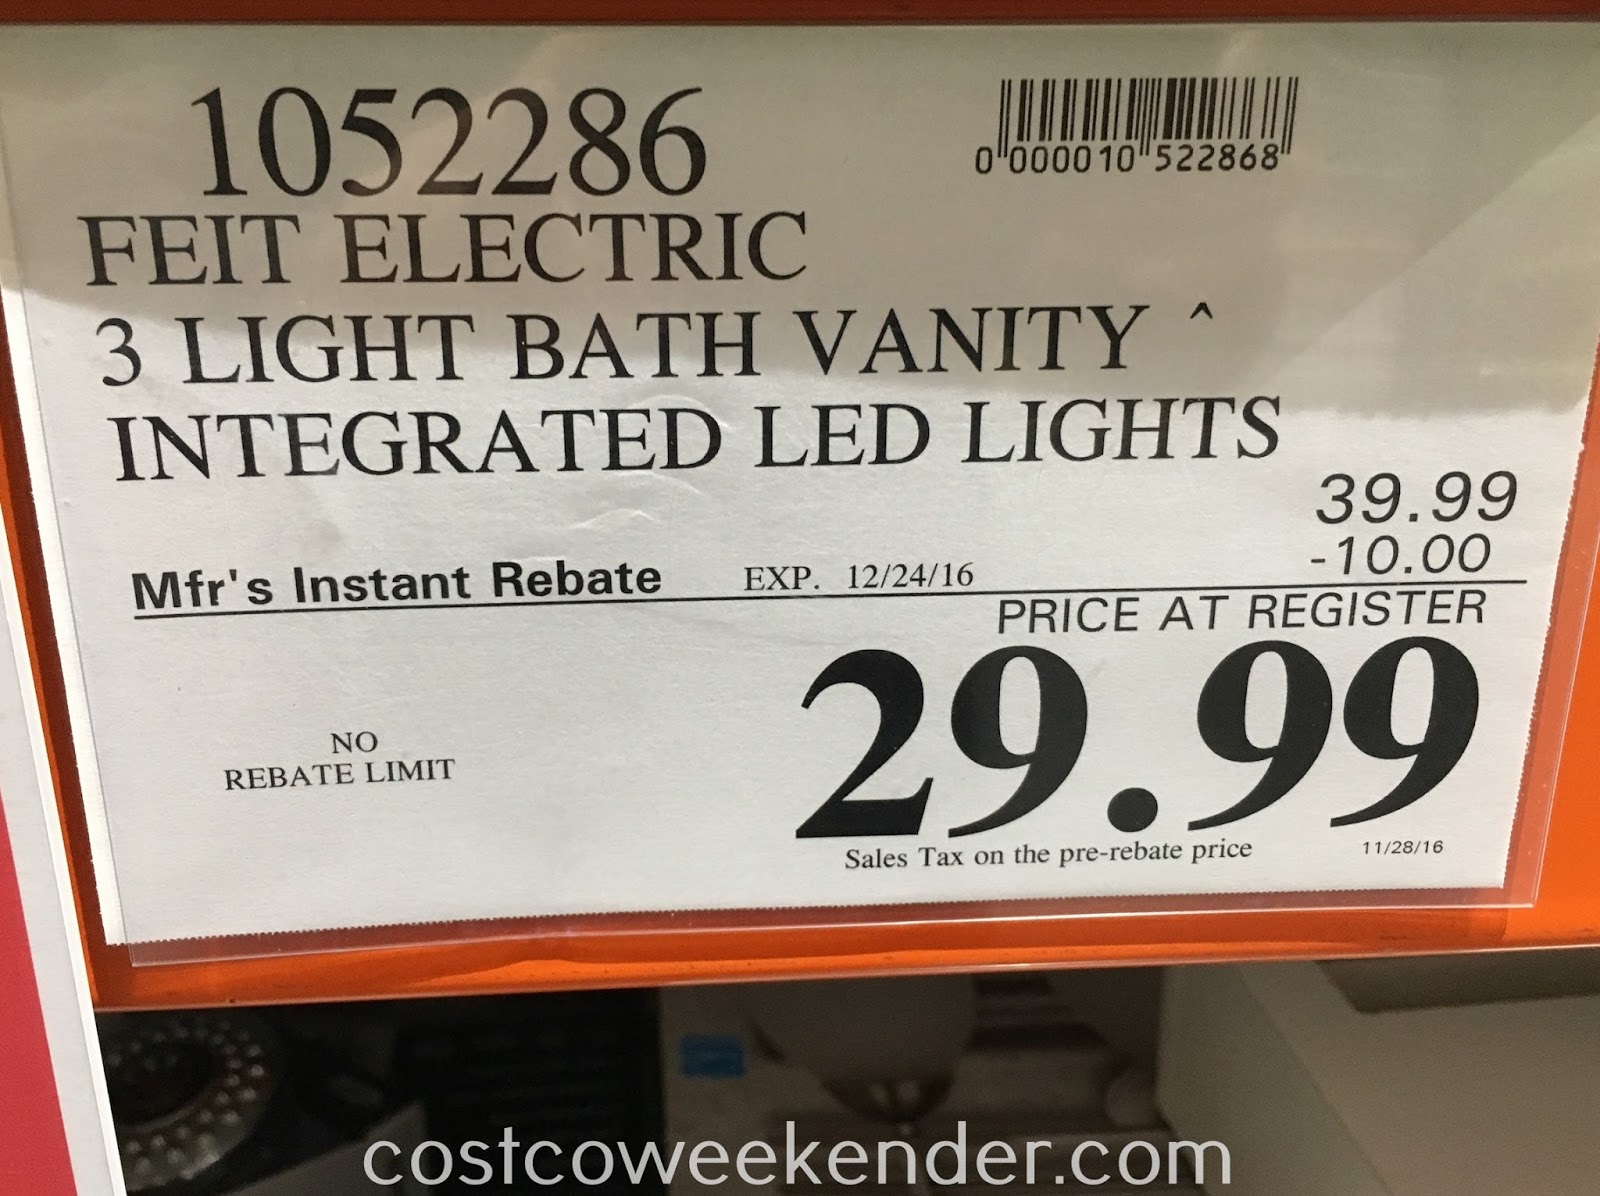 Deal for the Feit 3 Light Bath Vanity at Costco